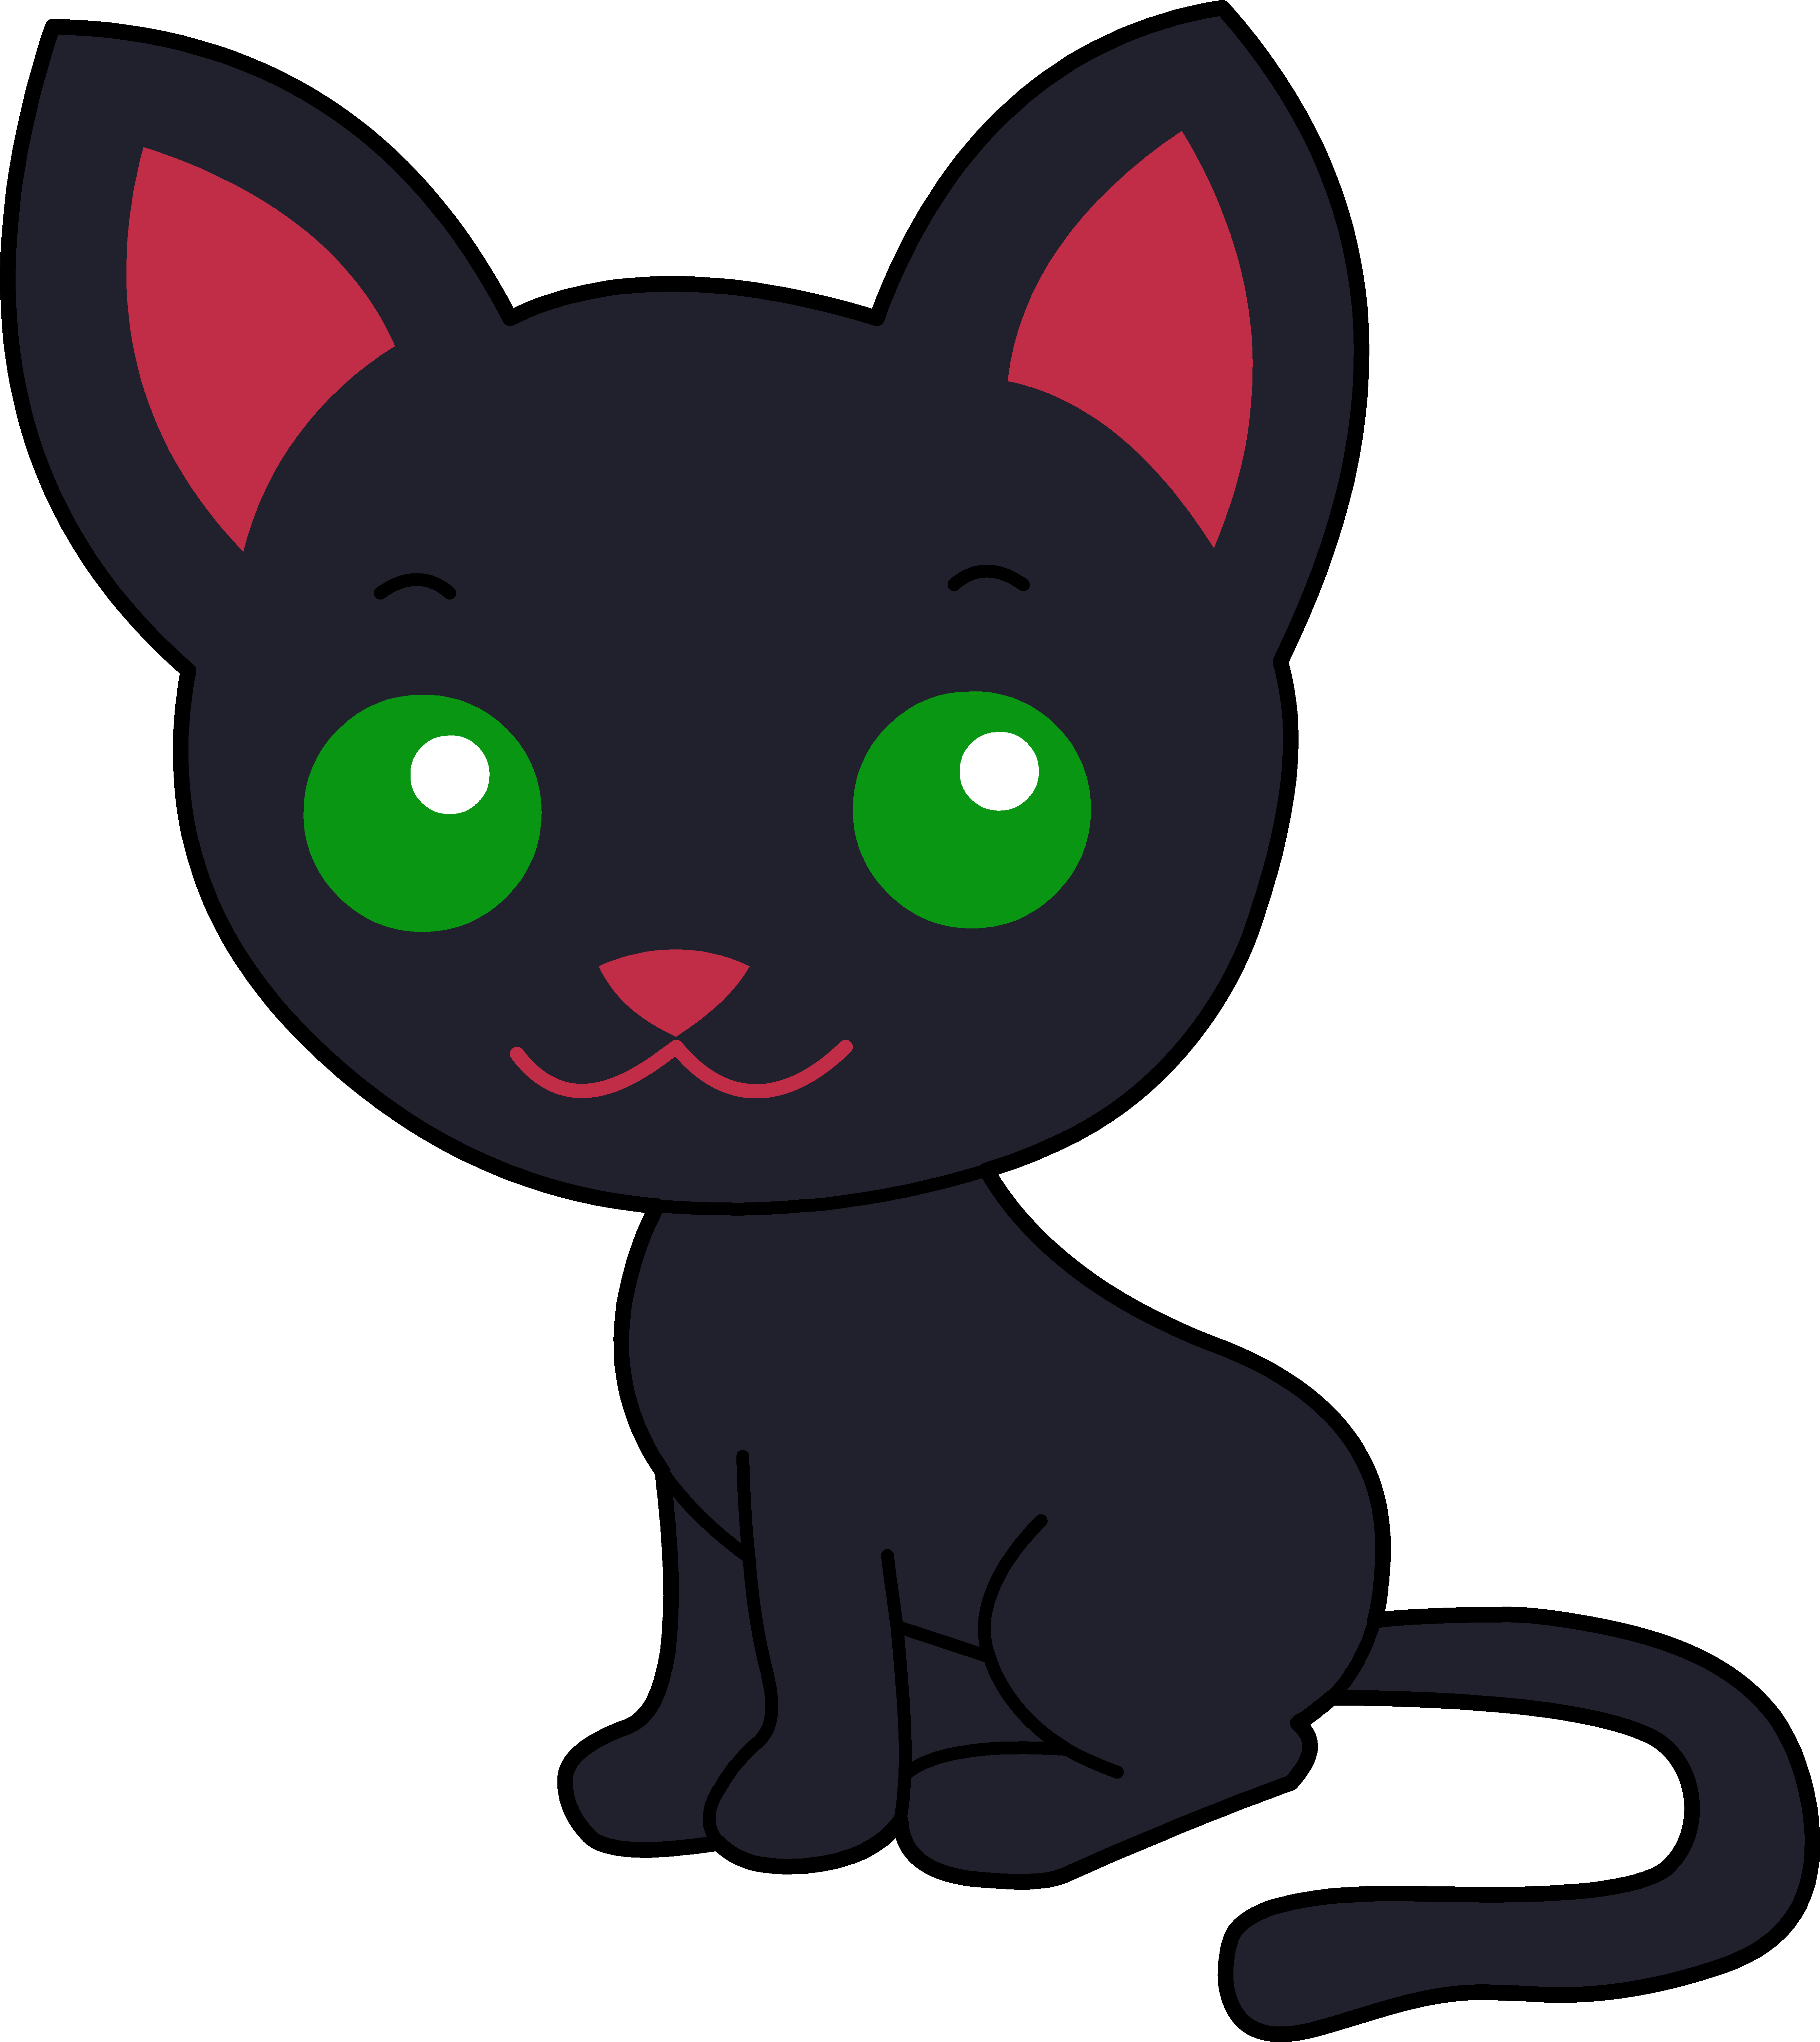 5368x6022 Cute Black Kitty Cat